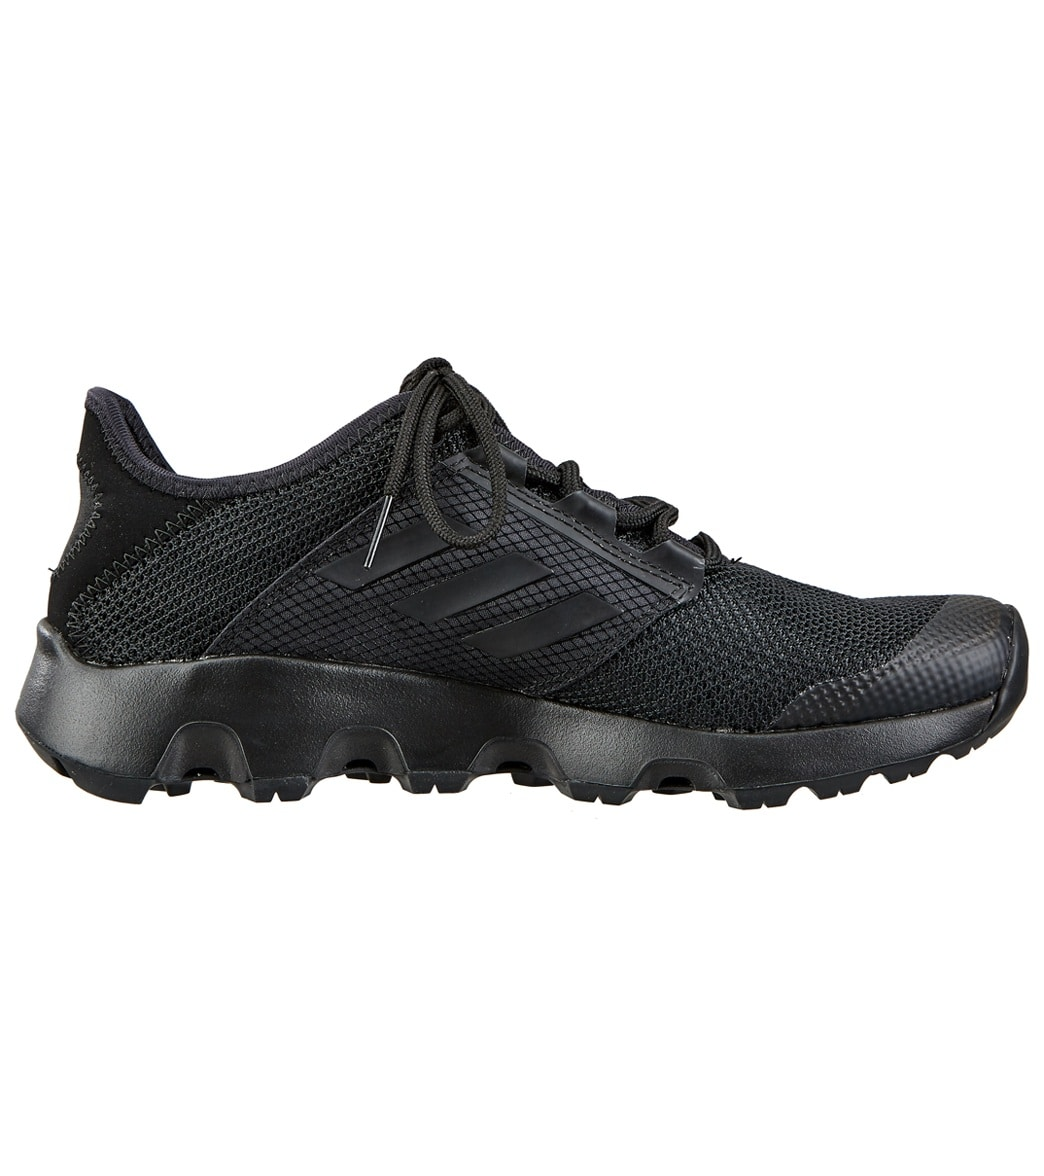 77ba328c3 Adidas Men s Climacool Voyager Water Shoes at SwimOutlet.com - Free ...